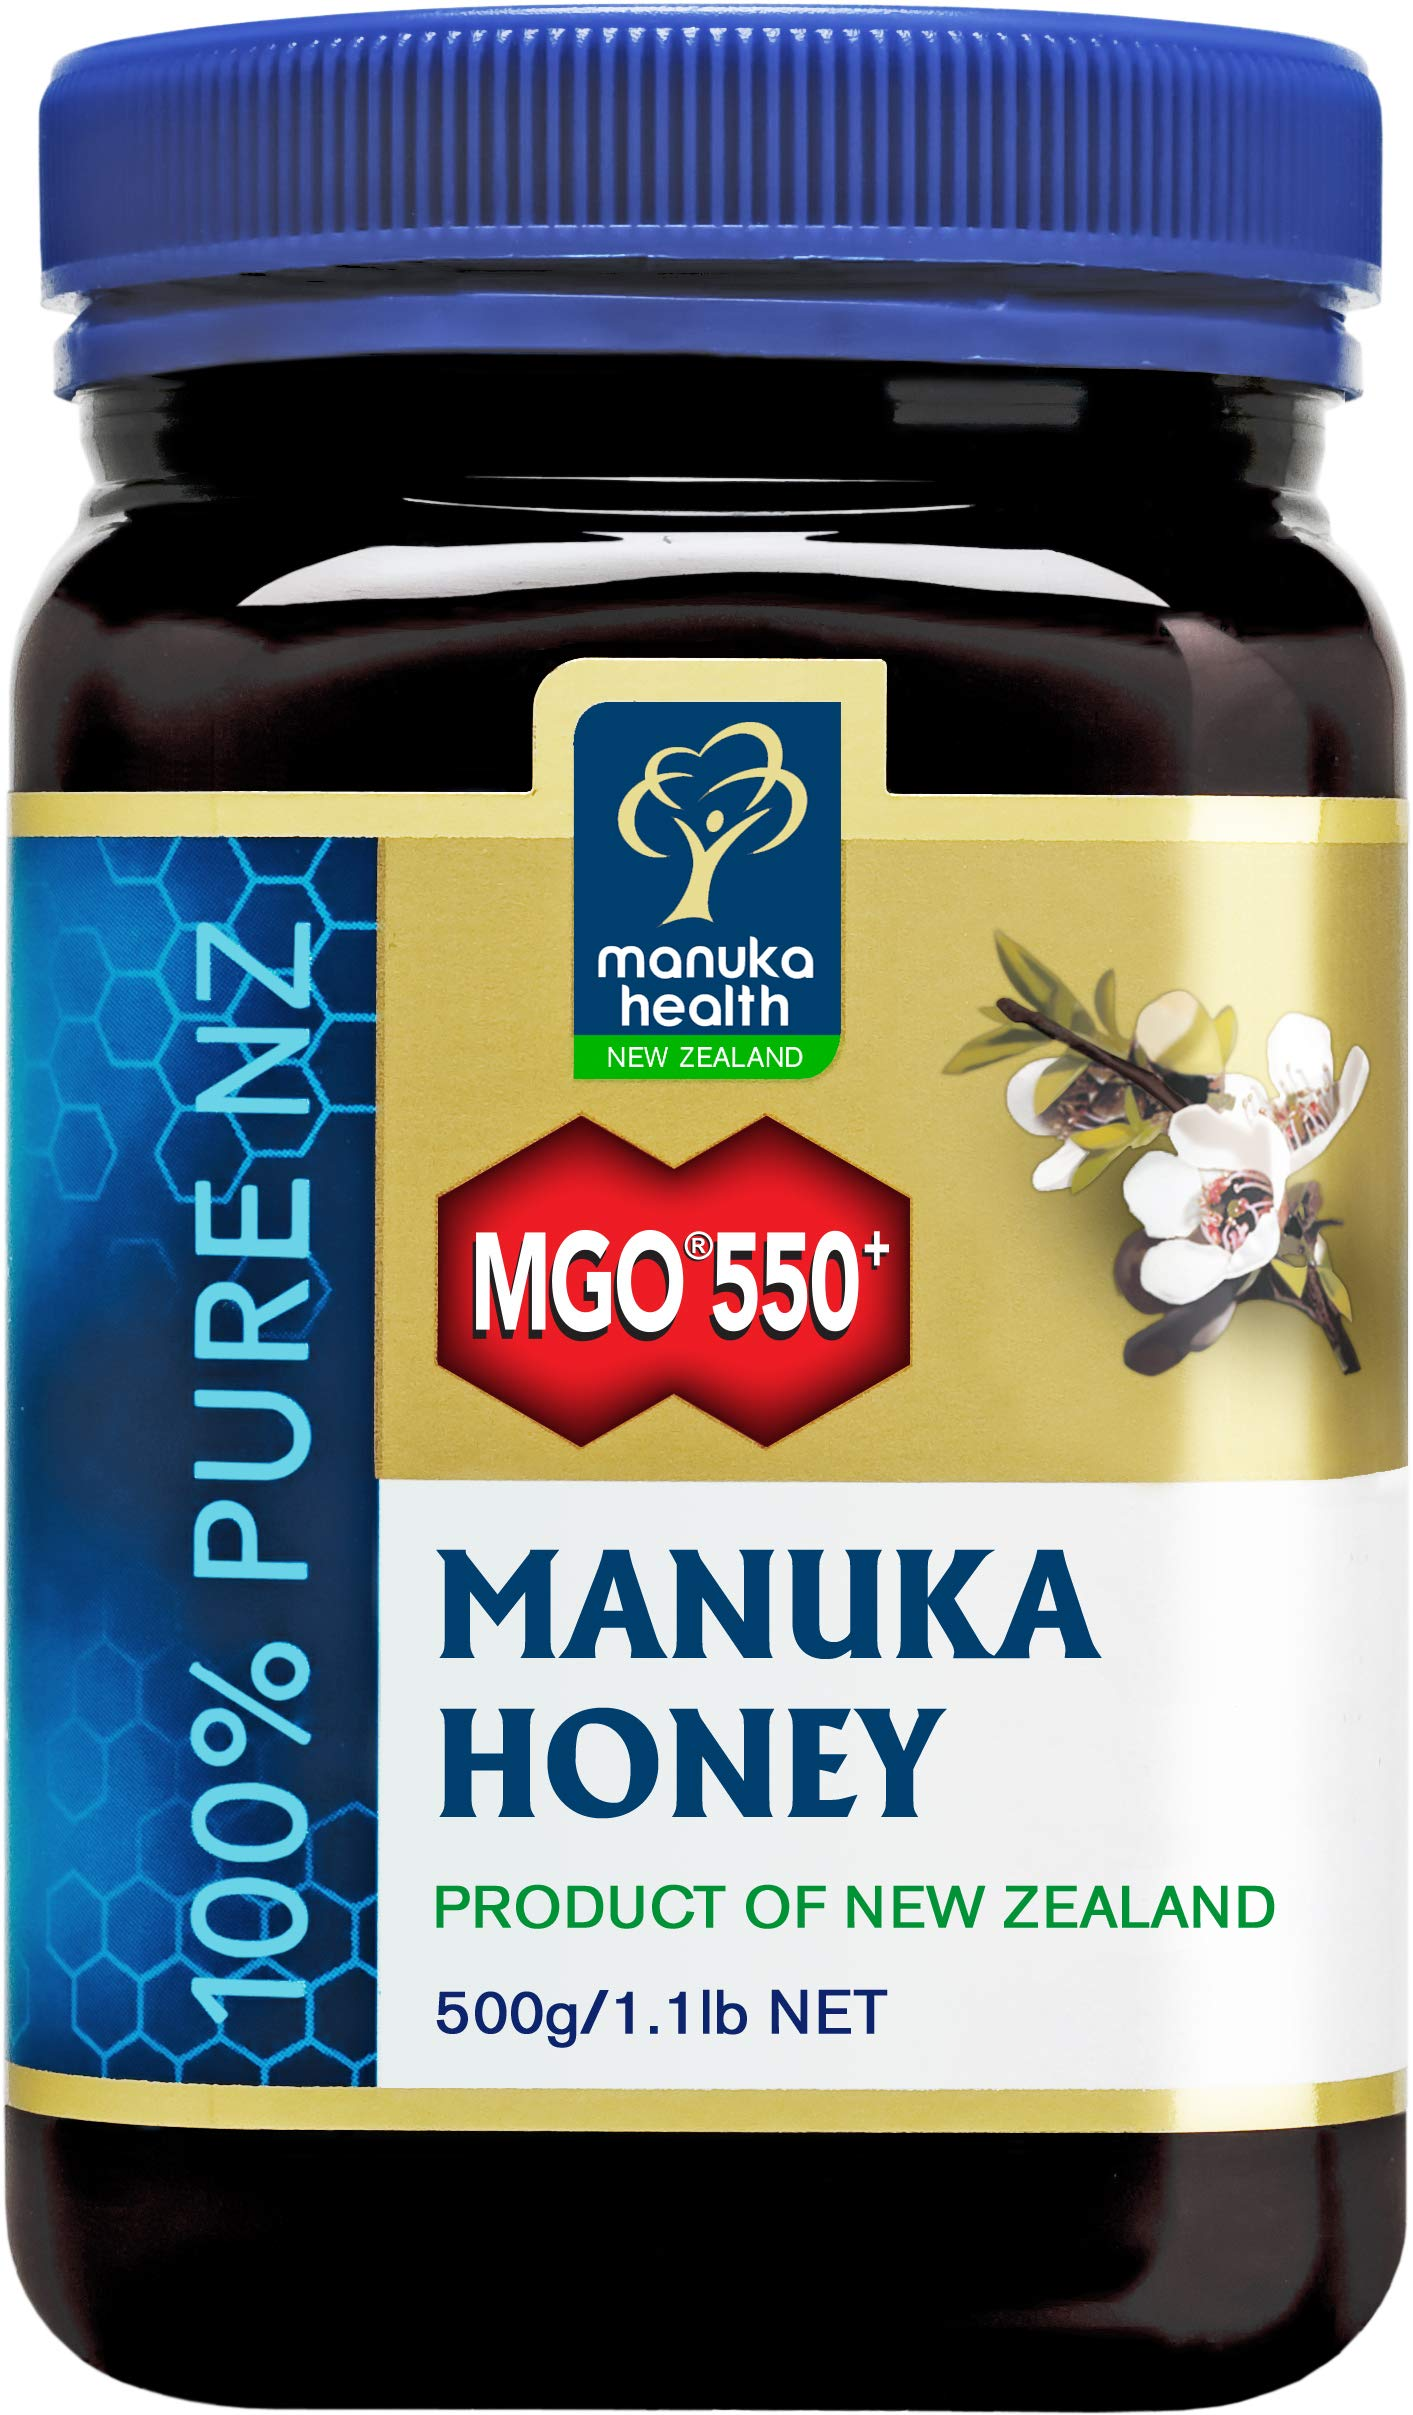 Manuka Health - MGO 550+ Manuka Honey, 500g